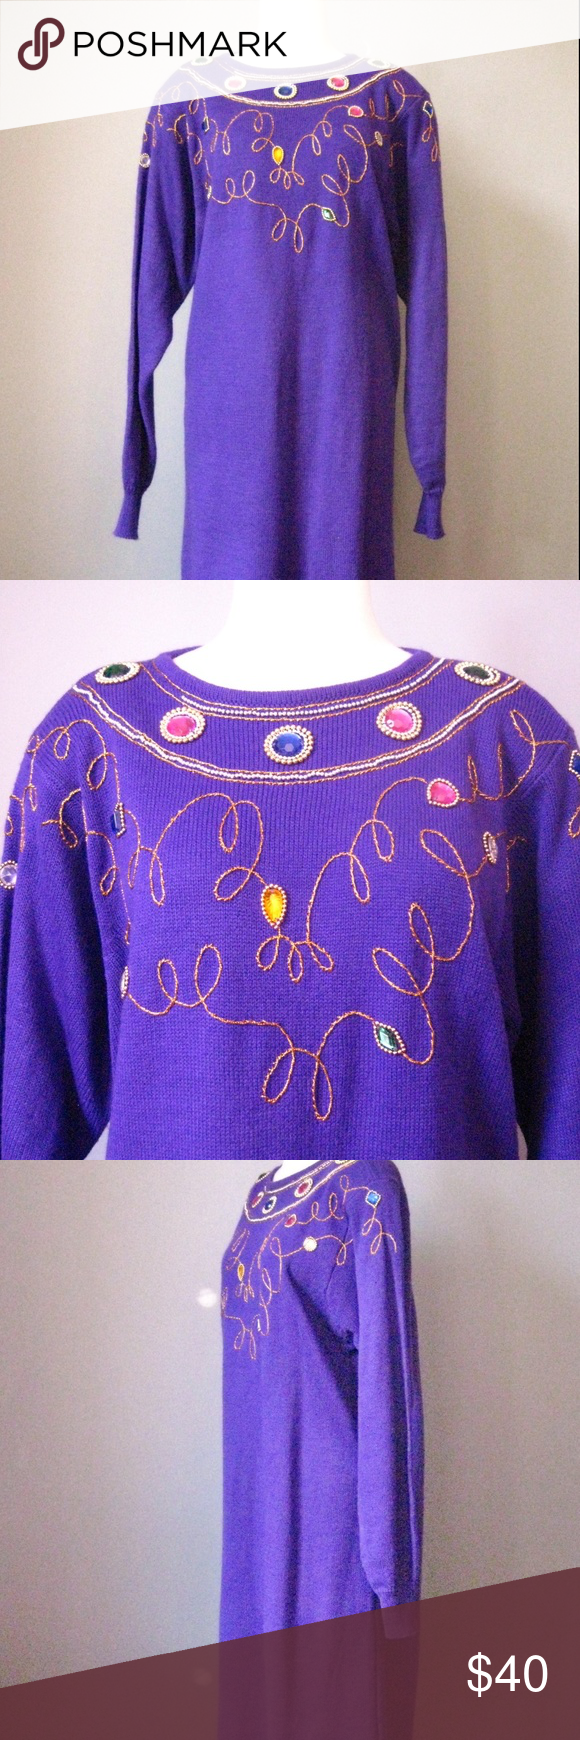 3f03dc30c9e Vintage Sweater Dress Early 90s Purple Jeweled For me